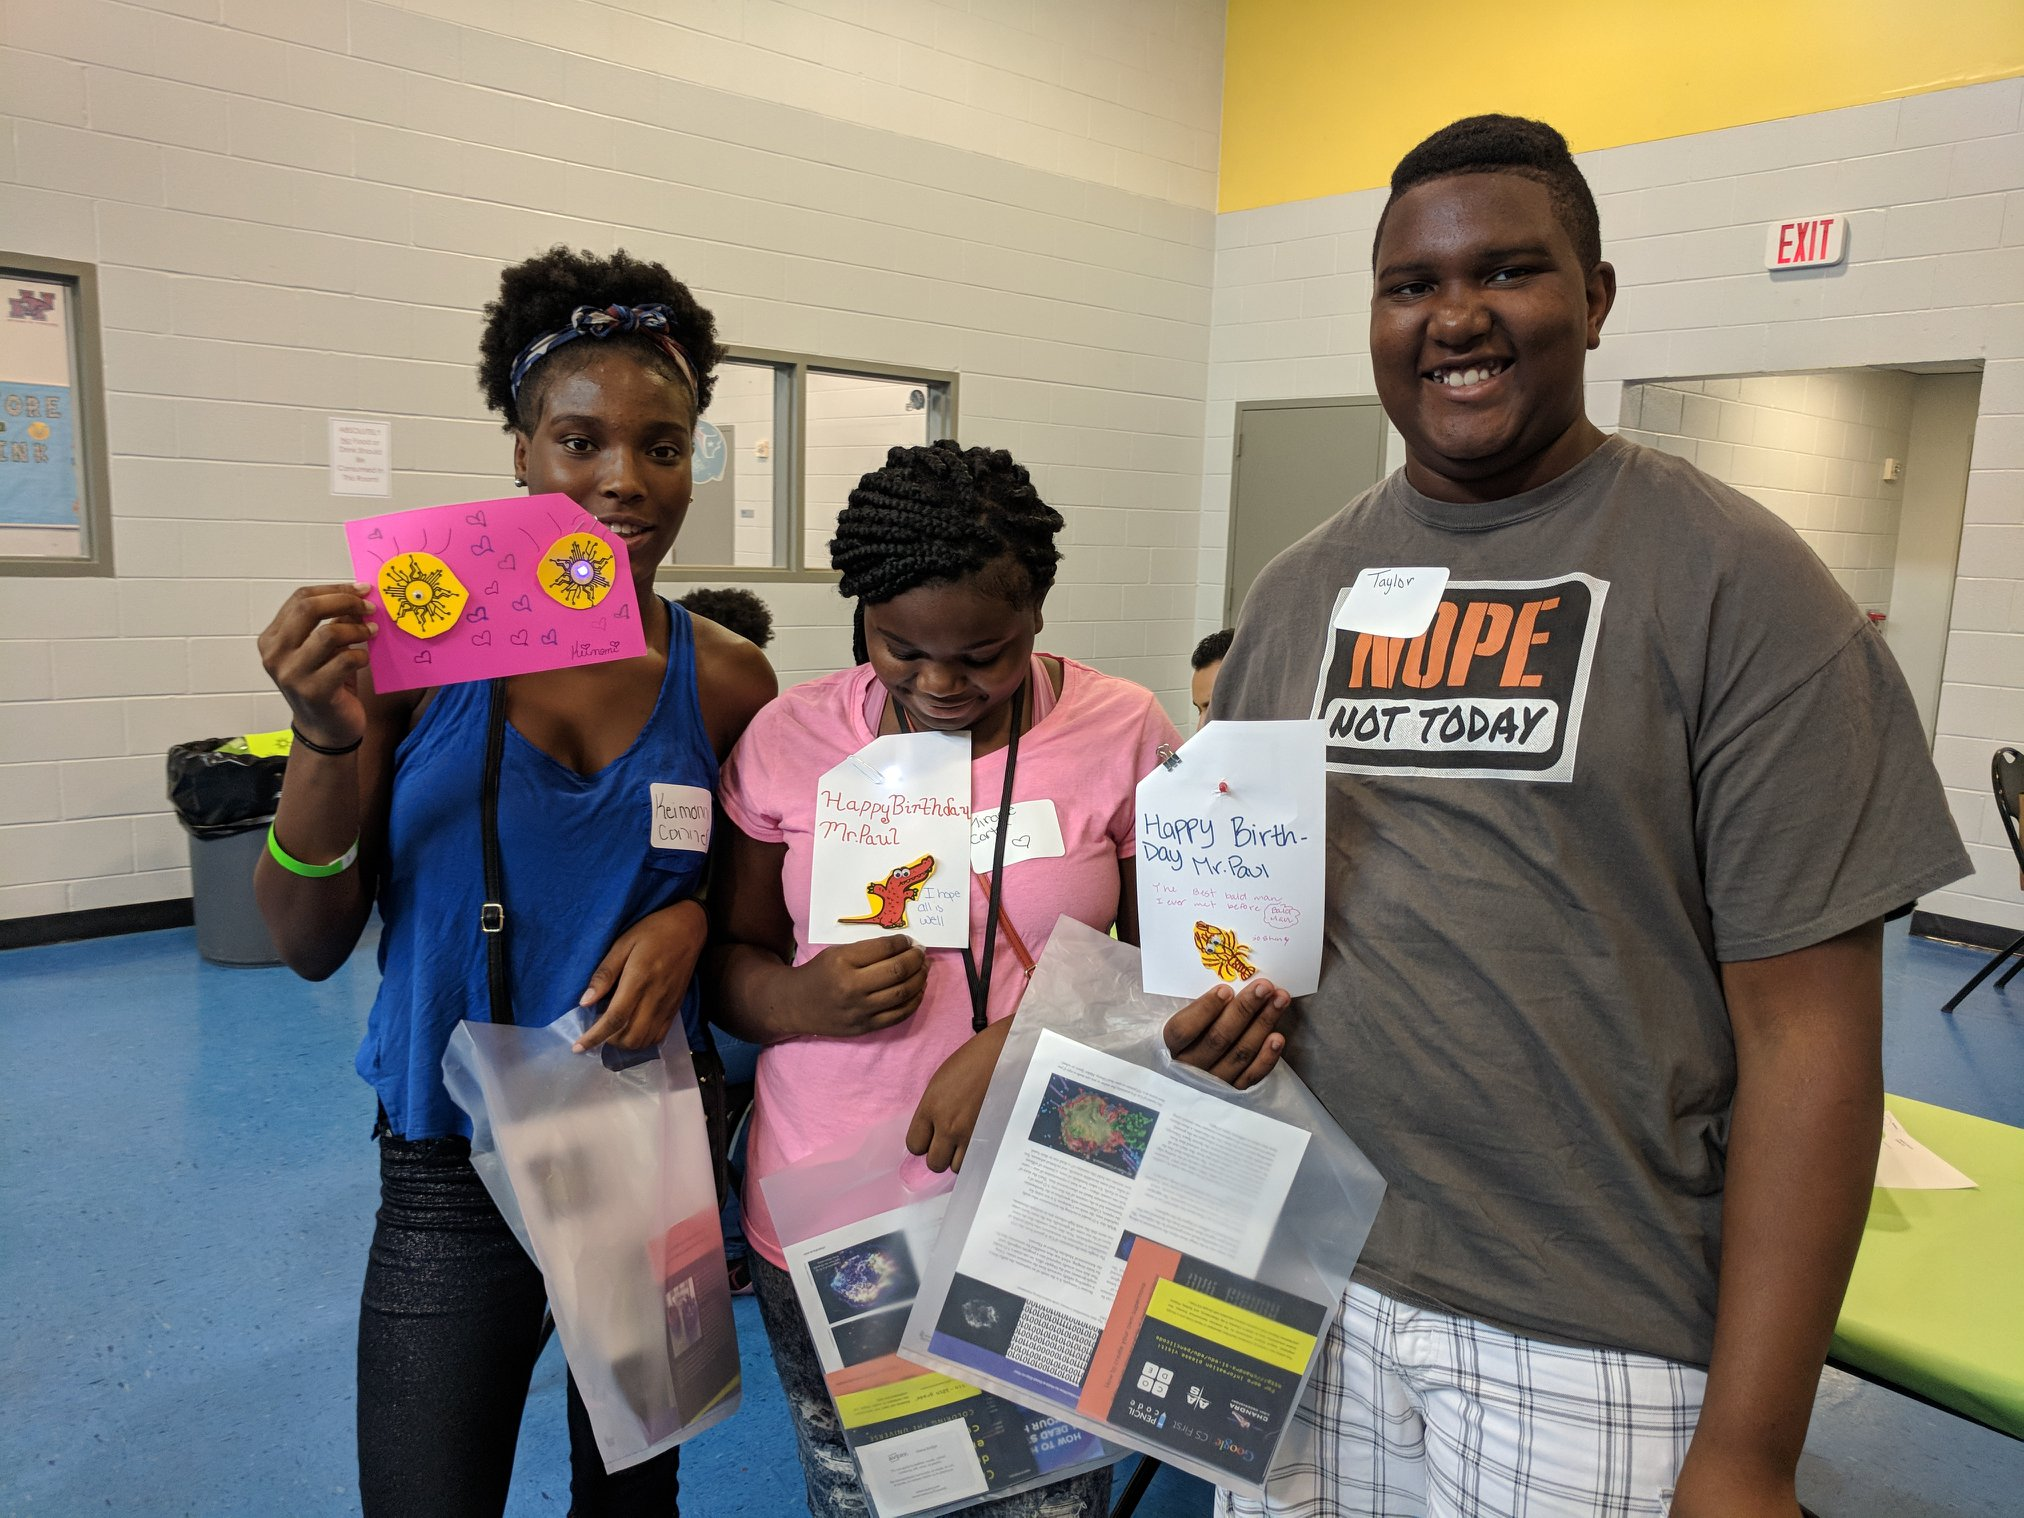 Students holding up the cards they made for Mr. Paul at the one day STEM Camp at Finnigan Park Community Center.July 7th 2018. Courtesy of Wanjun Zhang.